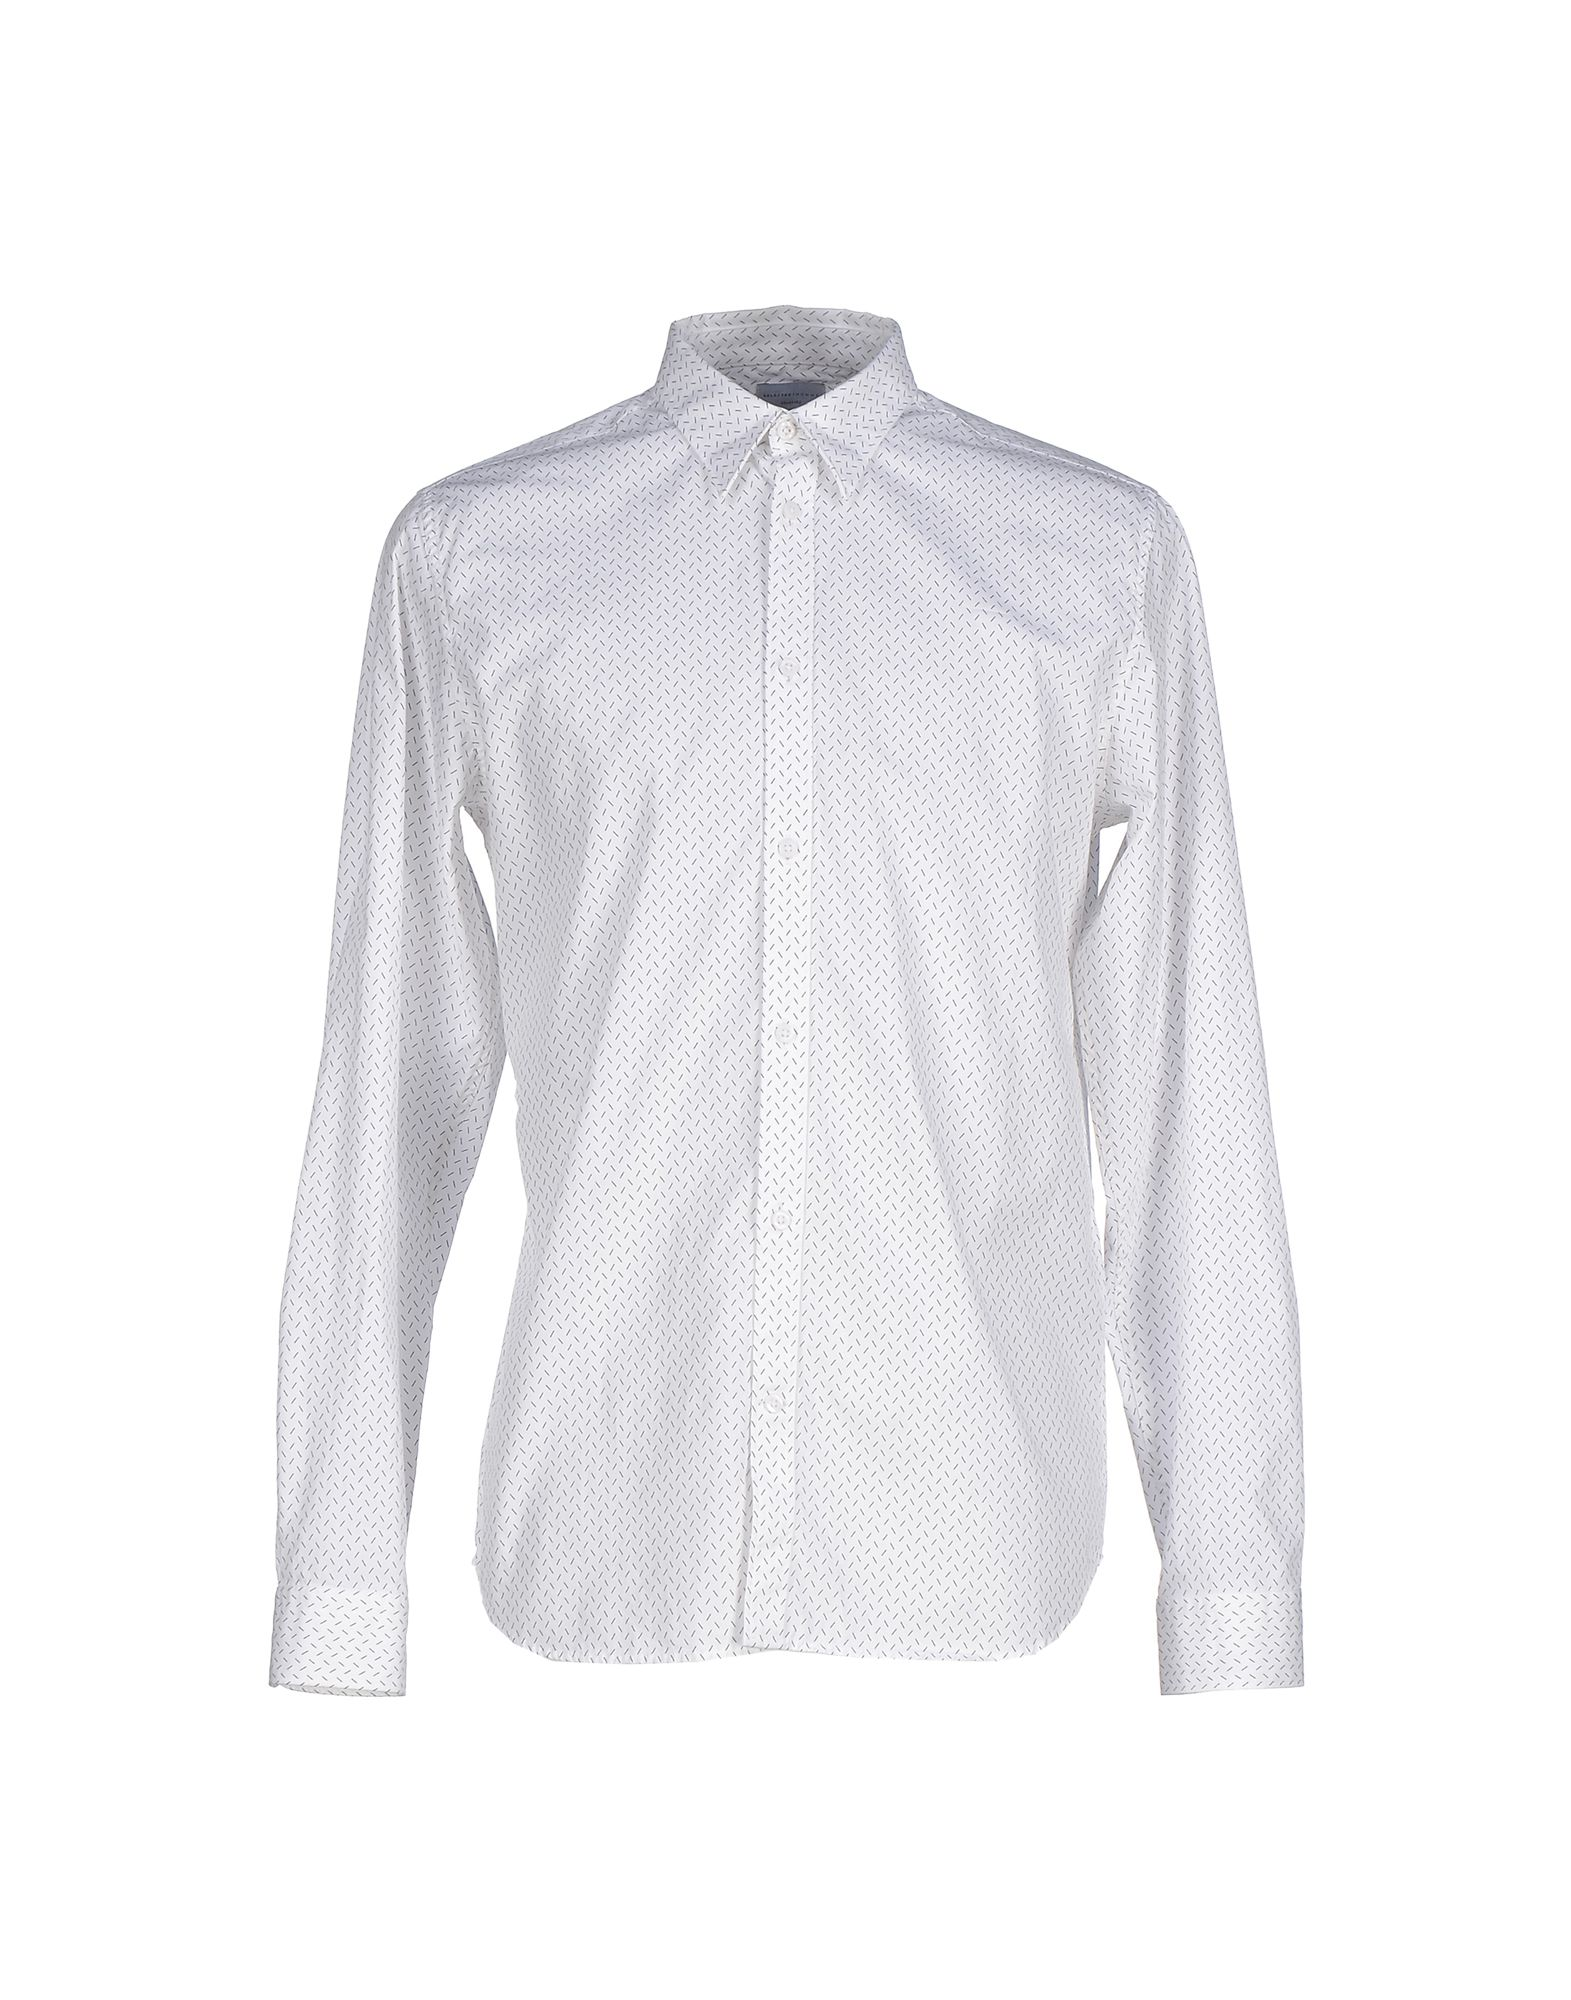 SELECTED HOMME Pубашка dior homme шарф